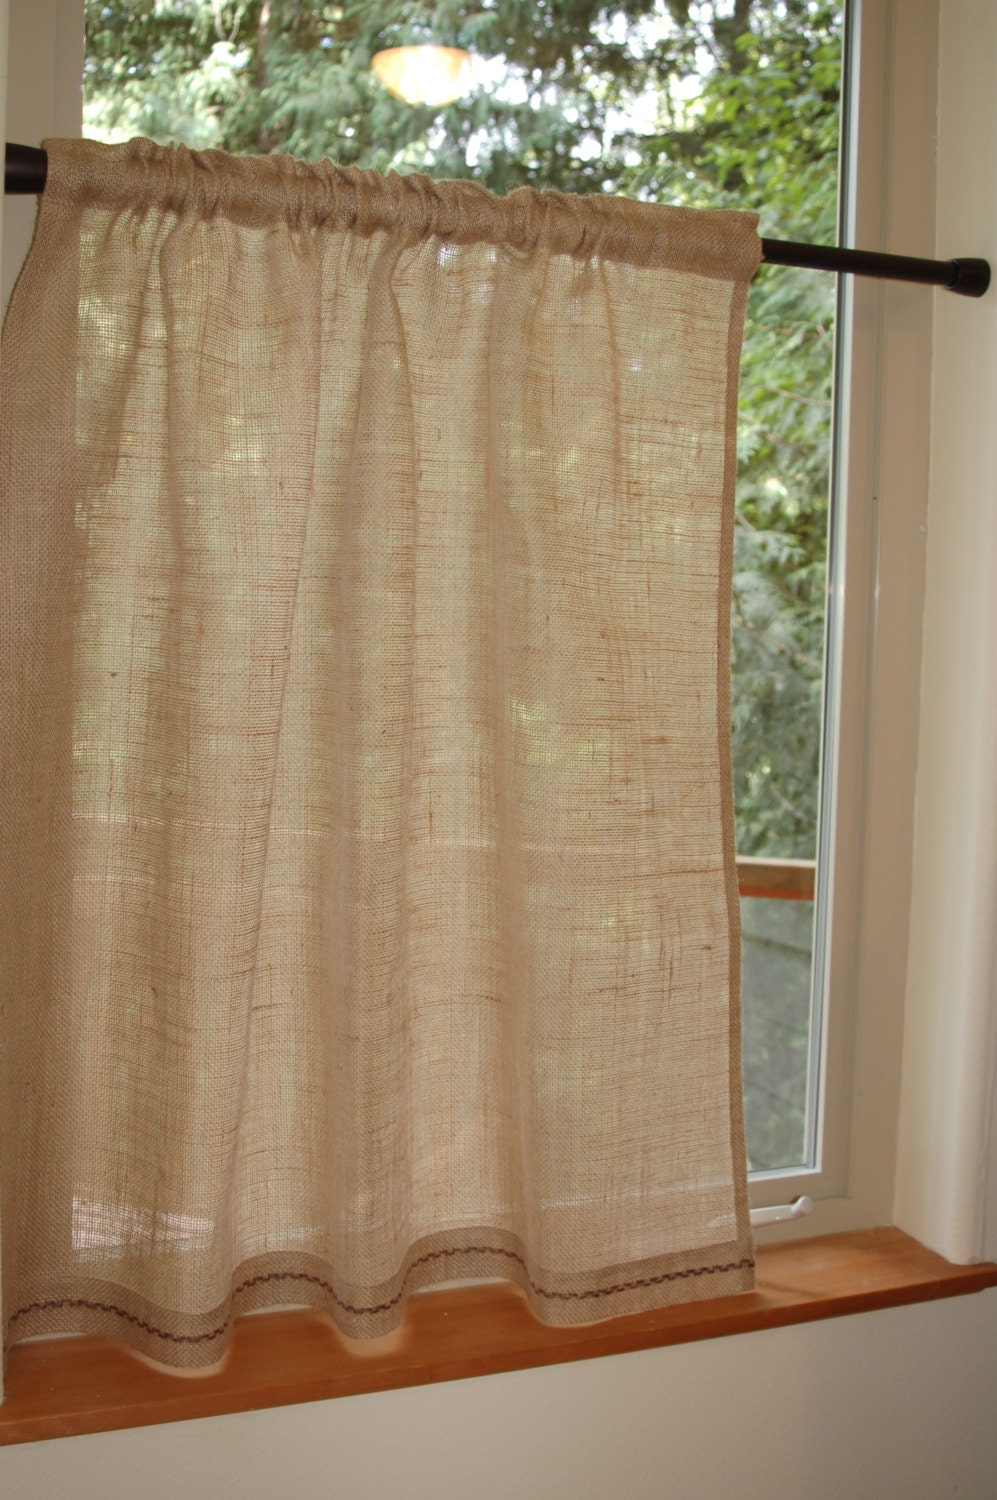 Lovely Rustic Chic Burlap Cafe Curtain Panel In Natural